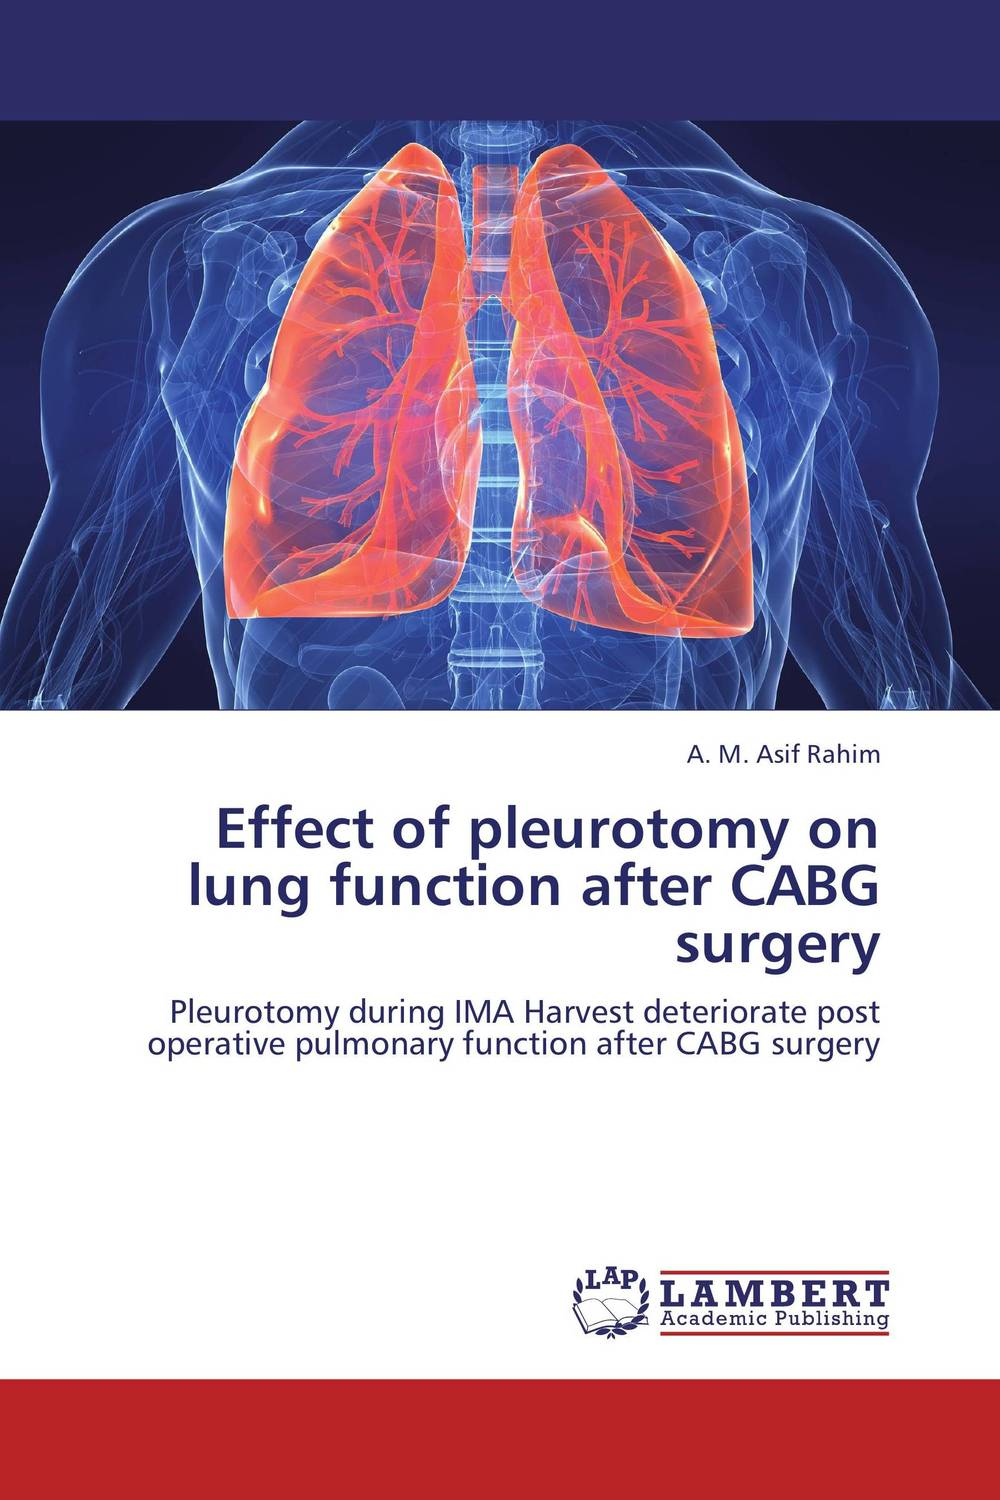 Effect of pleurotomy on lung function after CABG surgery